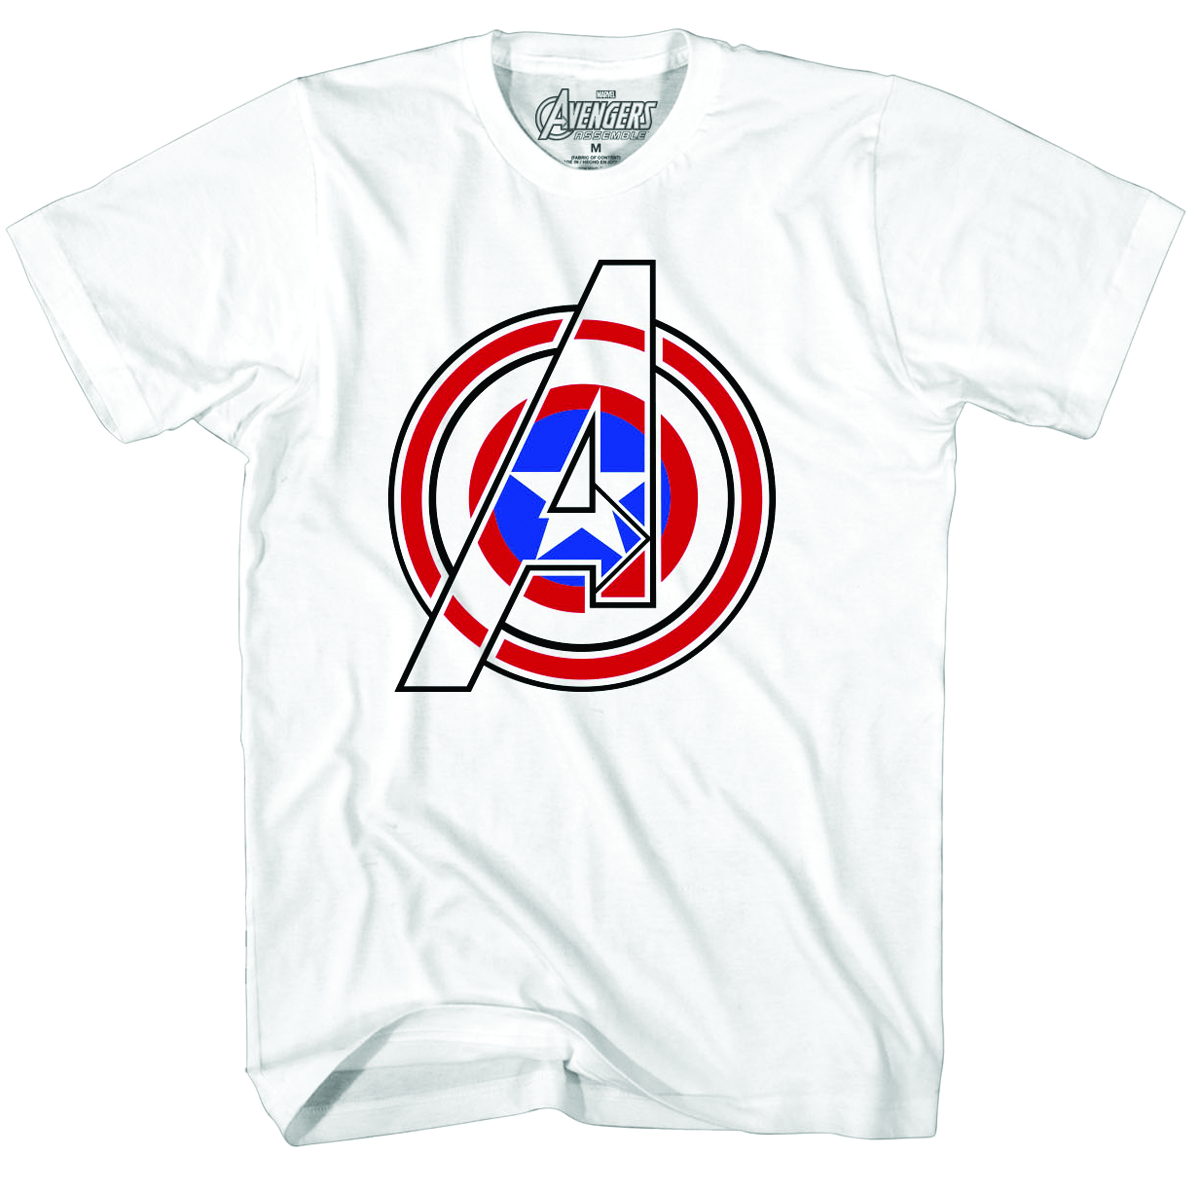 CAPTAIN AMERICA COMBINED ICONS PX WHT T/S XL